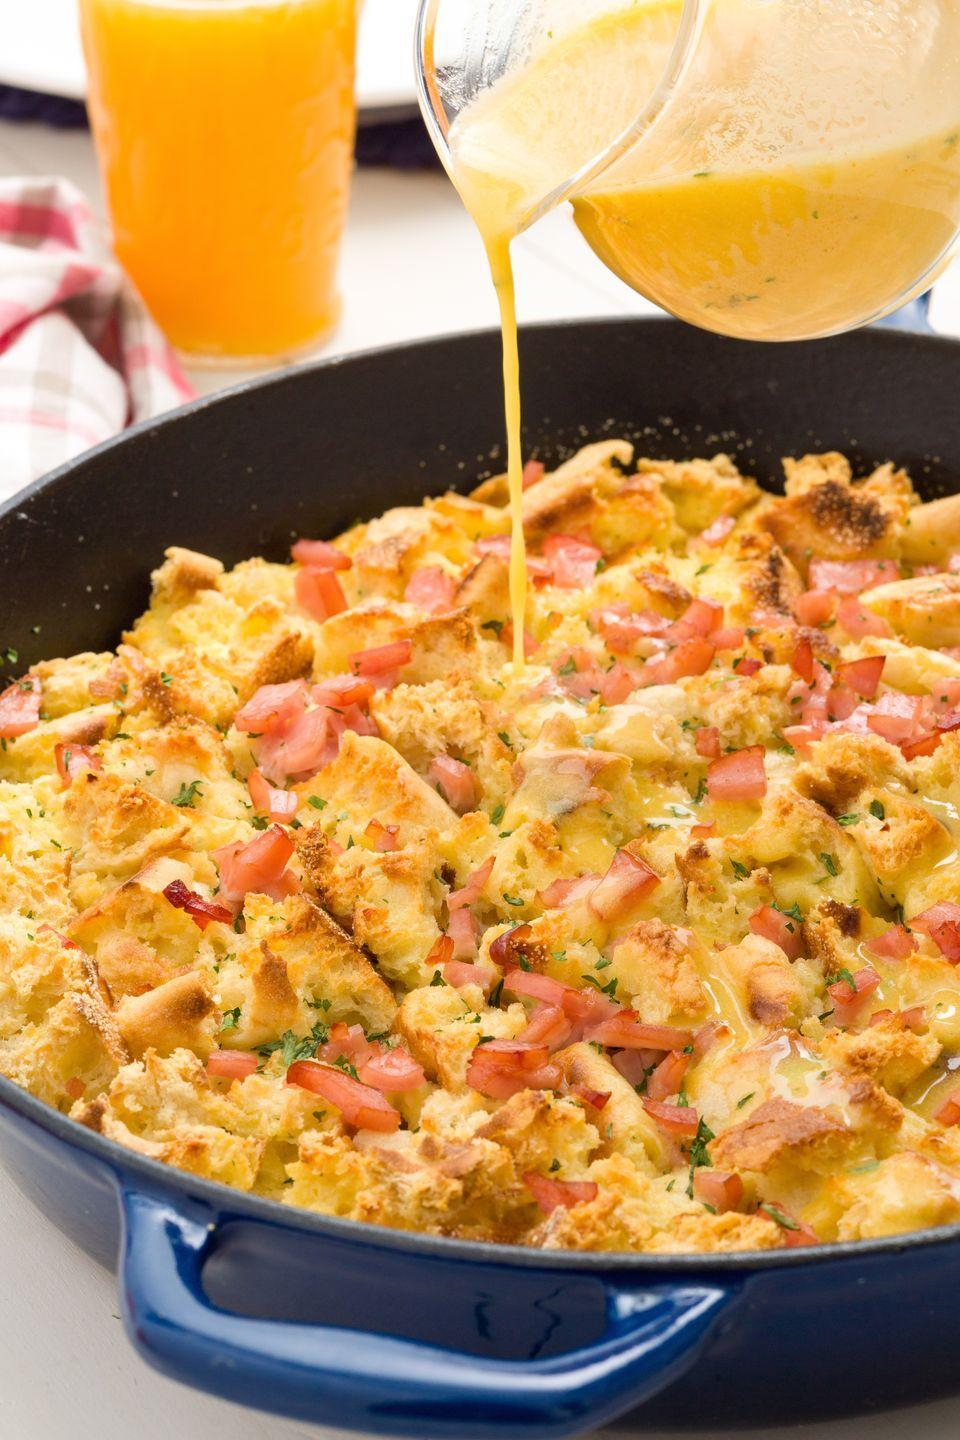 """<p><span>All the eggs benny you love, way less work.</span></p><p><span>Get the recipe from </span><a href=""""https://www.delish.com/cooking/recipe-ideas/recipes/a45032/eggs-benedict-skillet-casserole-recipe/"""" rel=""""nofollow noopener"""" target=""""_blank"""" data-ylk=""""slk:Delish"""" class=""""link rapid-noclick-resp"""">Delish</a><span>.</span> </p>"""